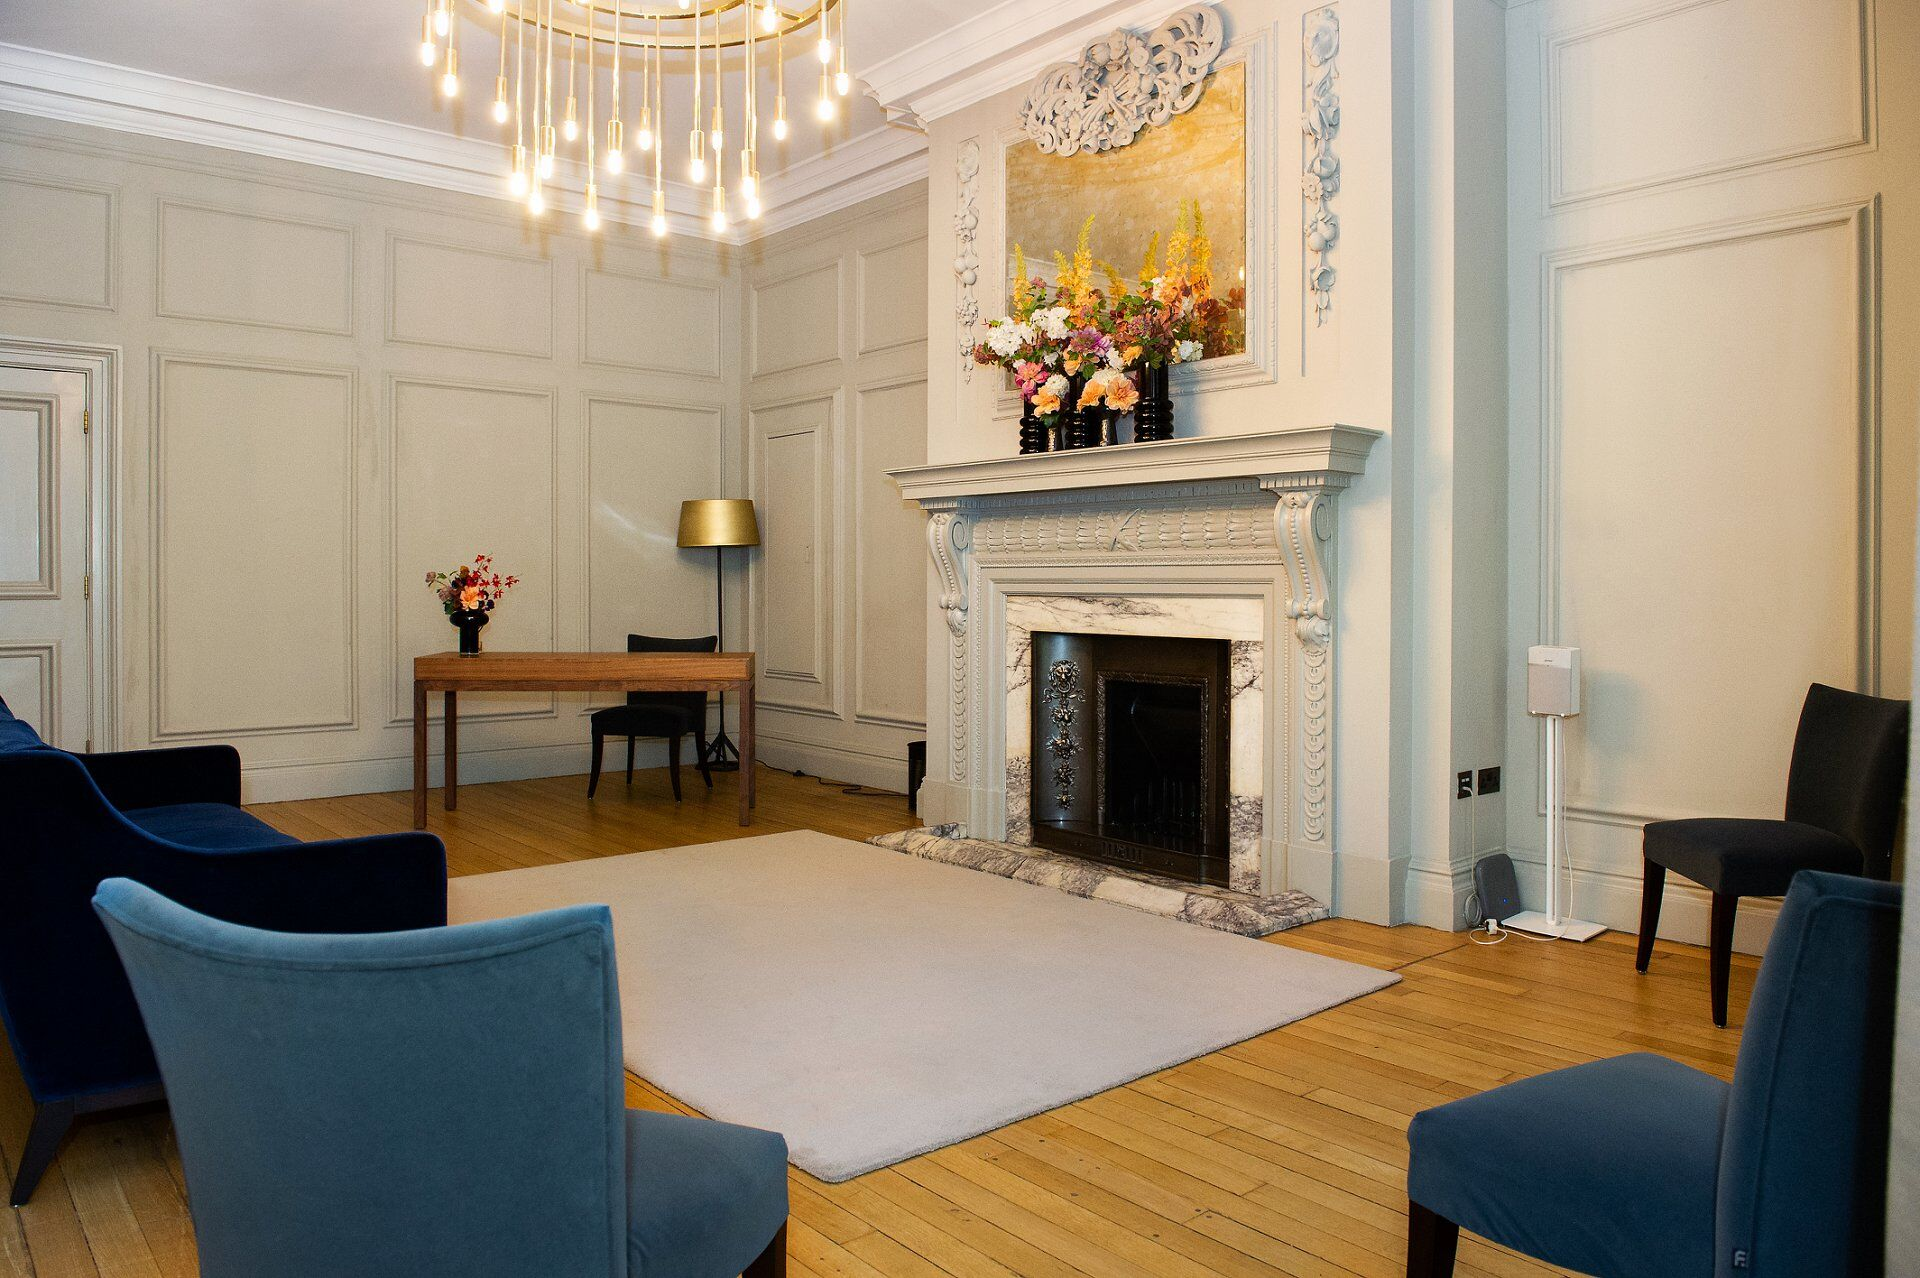 soho-room-revised-layout-october-2020-up-to-6-guests-englands-most-popular-wedding-venue